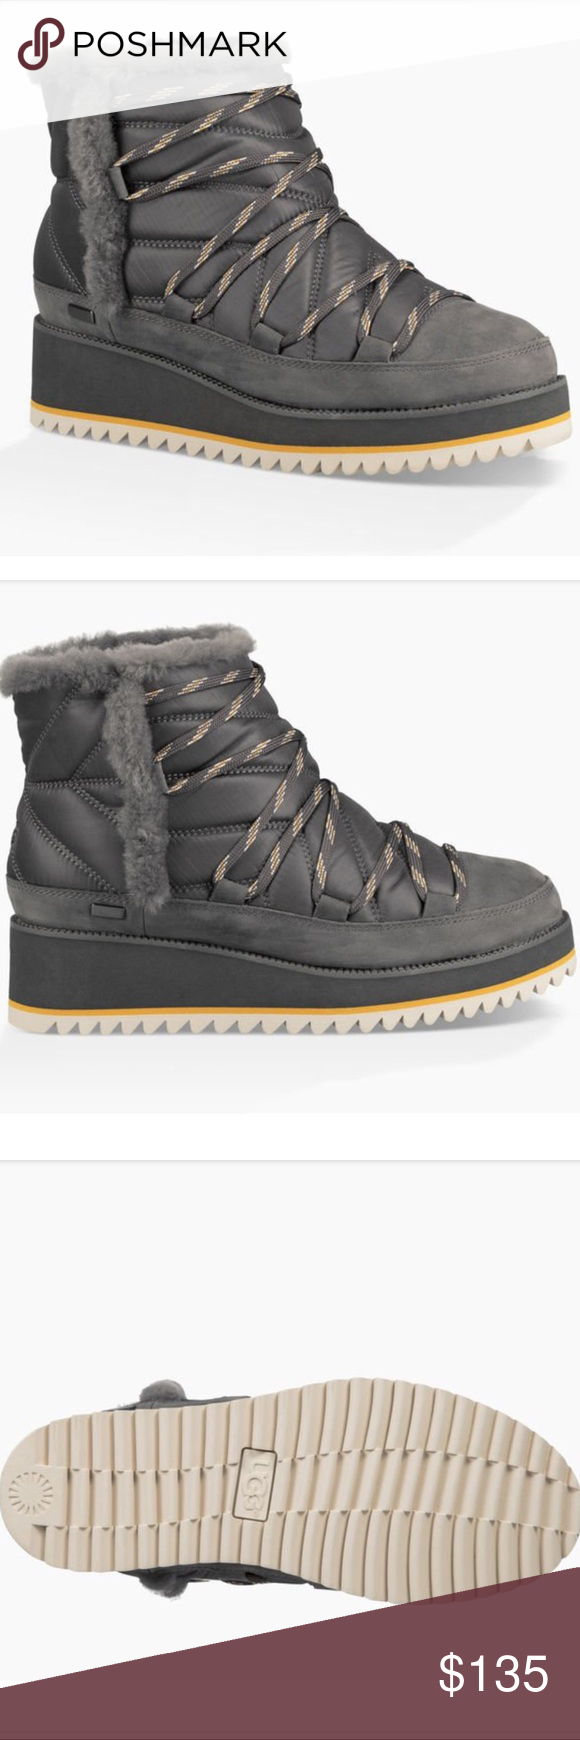 03ec006e5e8 Ugg Cayden Charcoal Gray Boots 🥾 The Cayden can withstand ...